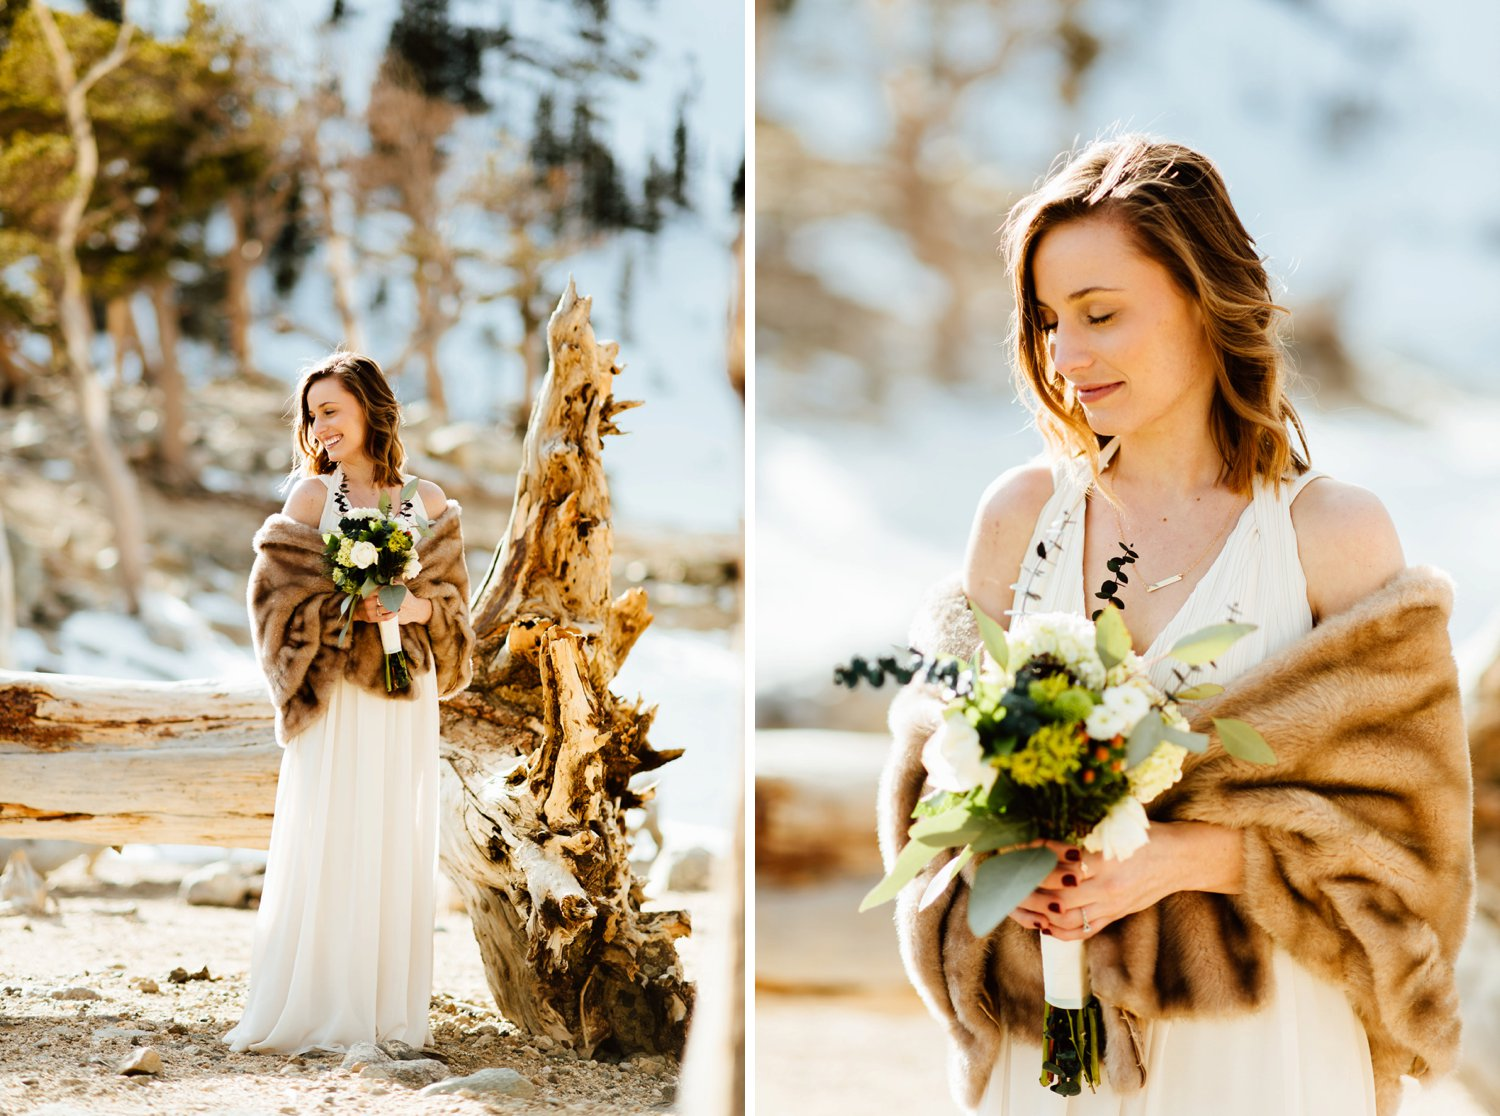 I absolutely love Kelsie's fur shawl and ivory wedding dress. She fits right in in the snowcapped mountains around St. Mary's Glacier in Idaho Springs, Colorado.| Winter, mountain wedding photos by intimate, elopement photographer, Maddie Mae.